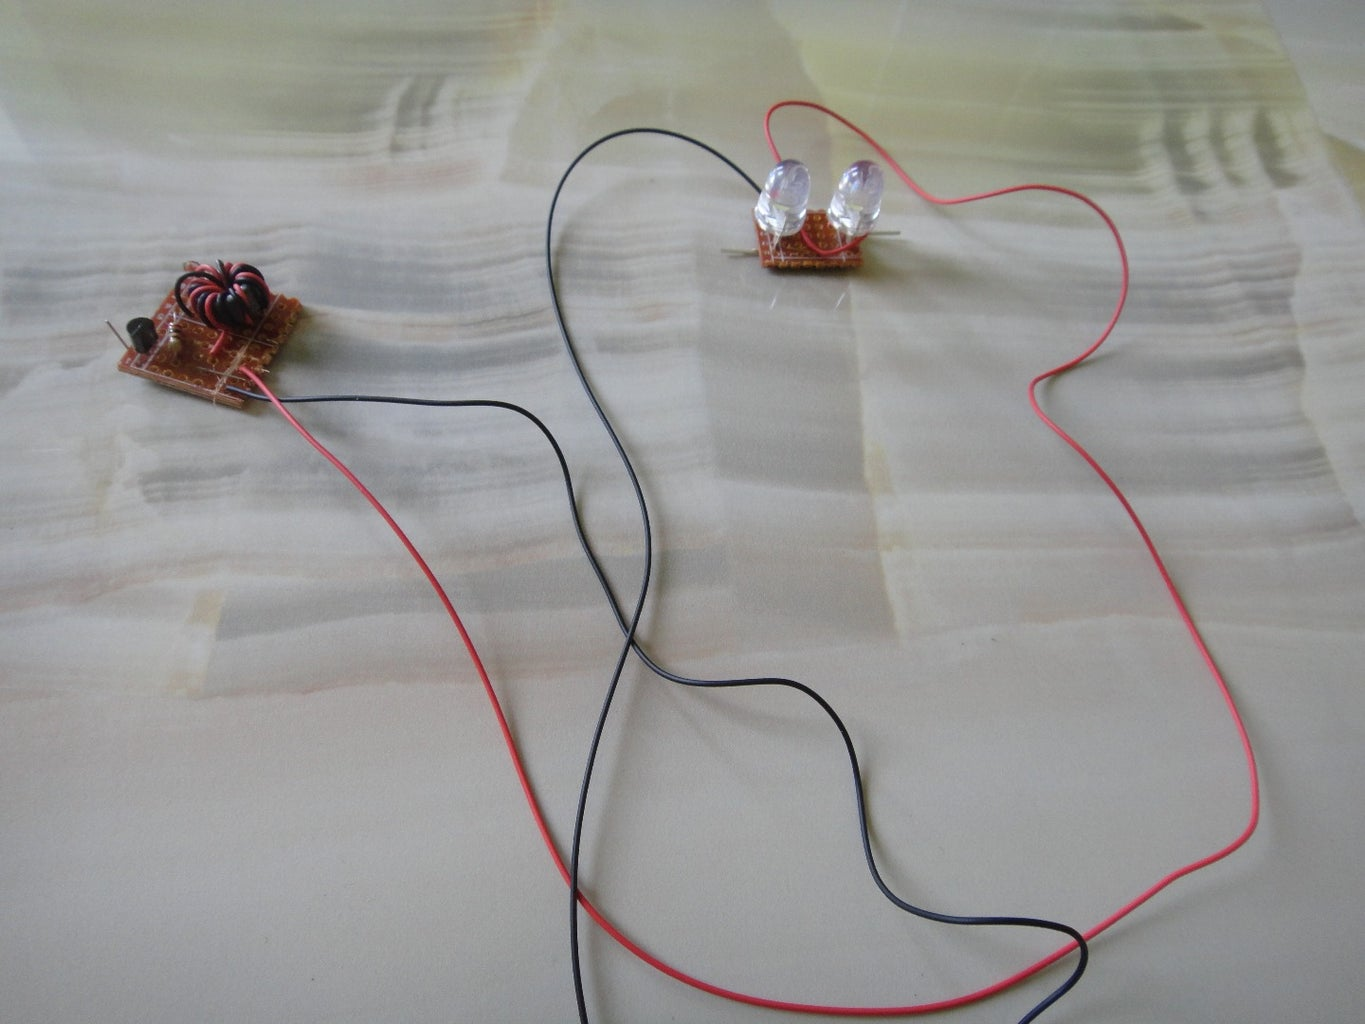 The Voltage Booster Circuit